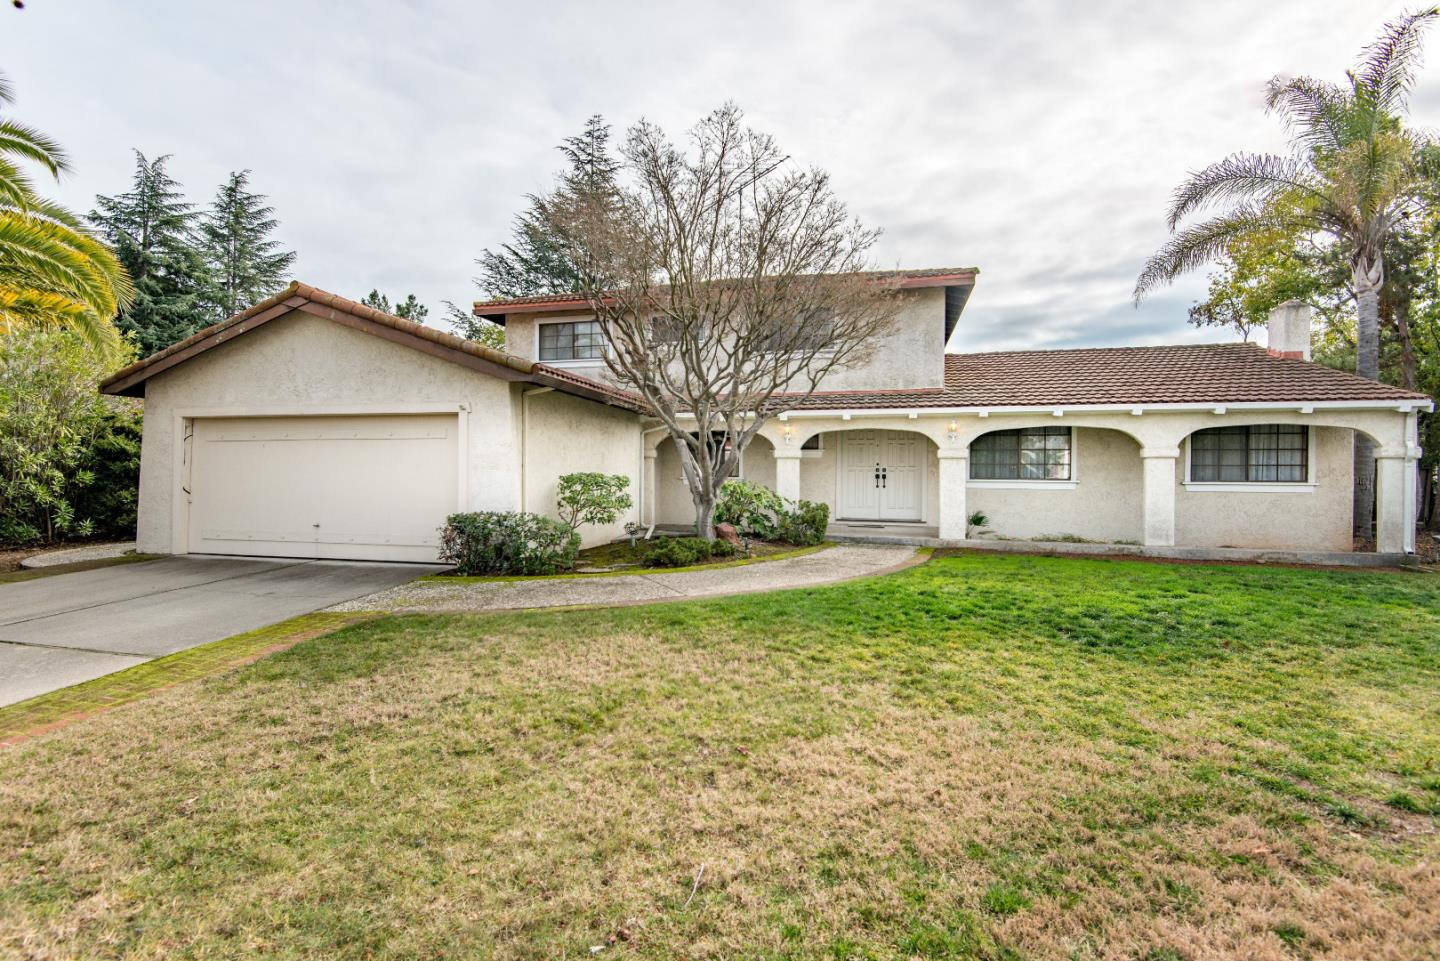 20052 Sea Gull Way, Saratoga, CA 95070